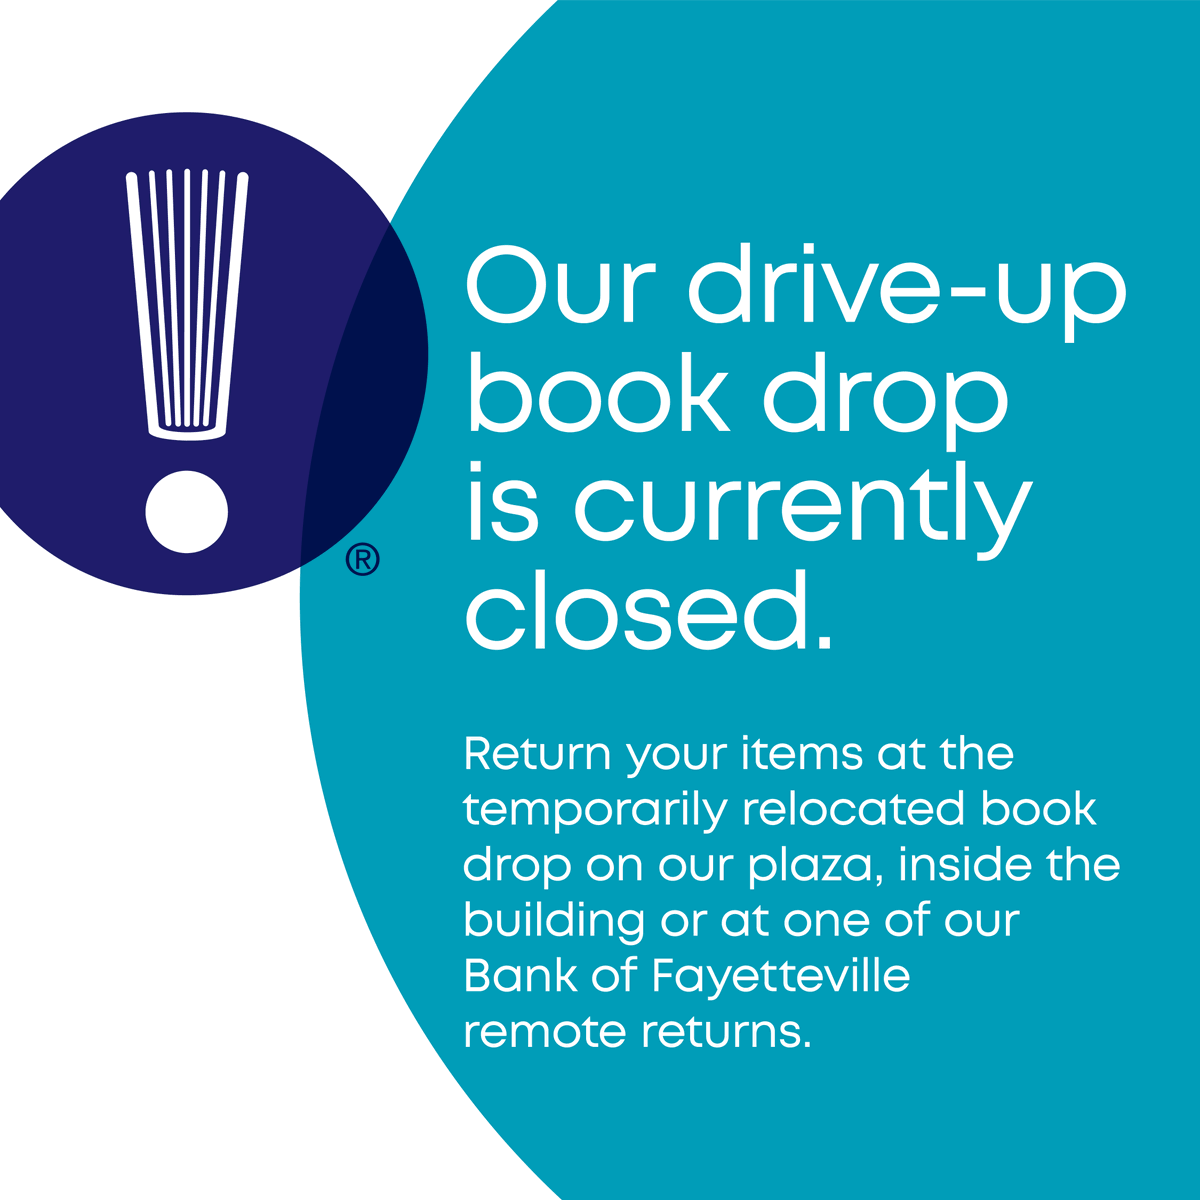 Access to our drive-up book drop is closed due to road construction. A walk-up book drop is now located on the plaza outside of our main entrance. Another option for returns are our remote book drops at the Bank of Fayetteville locations.